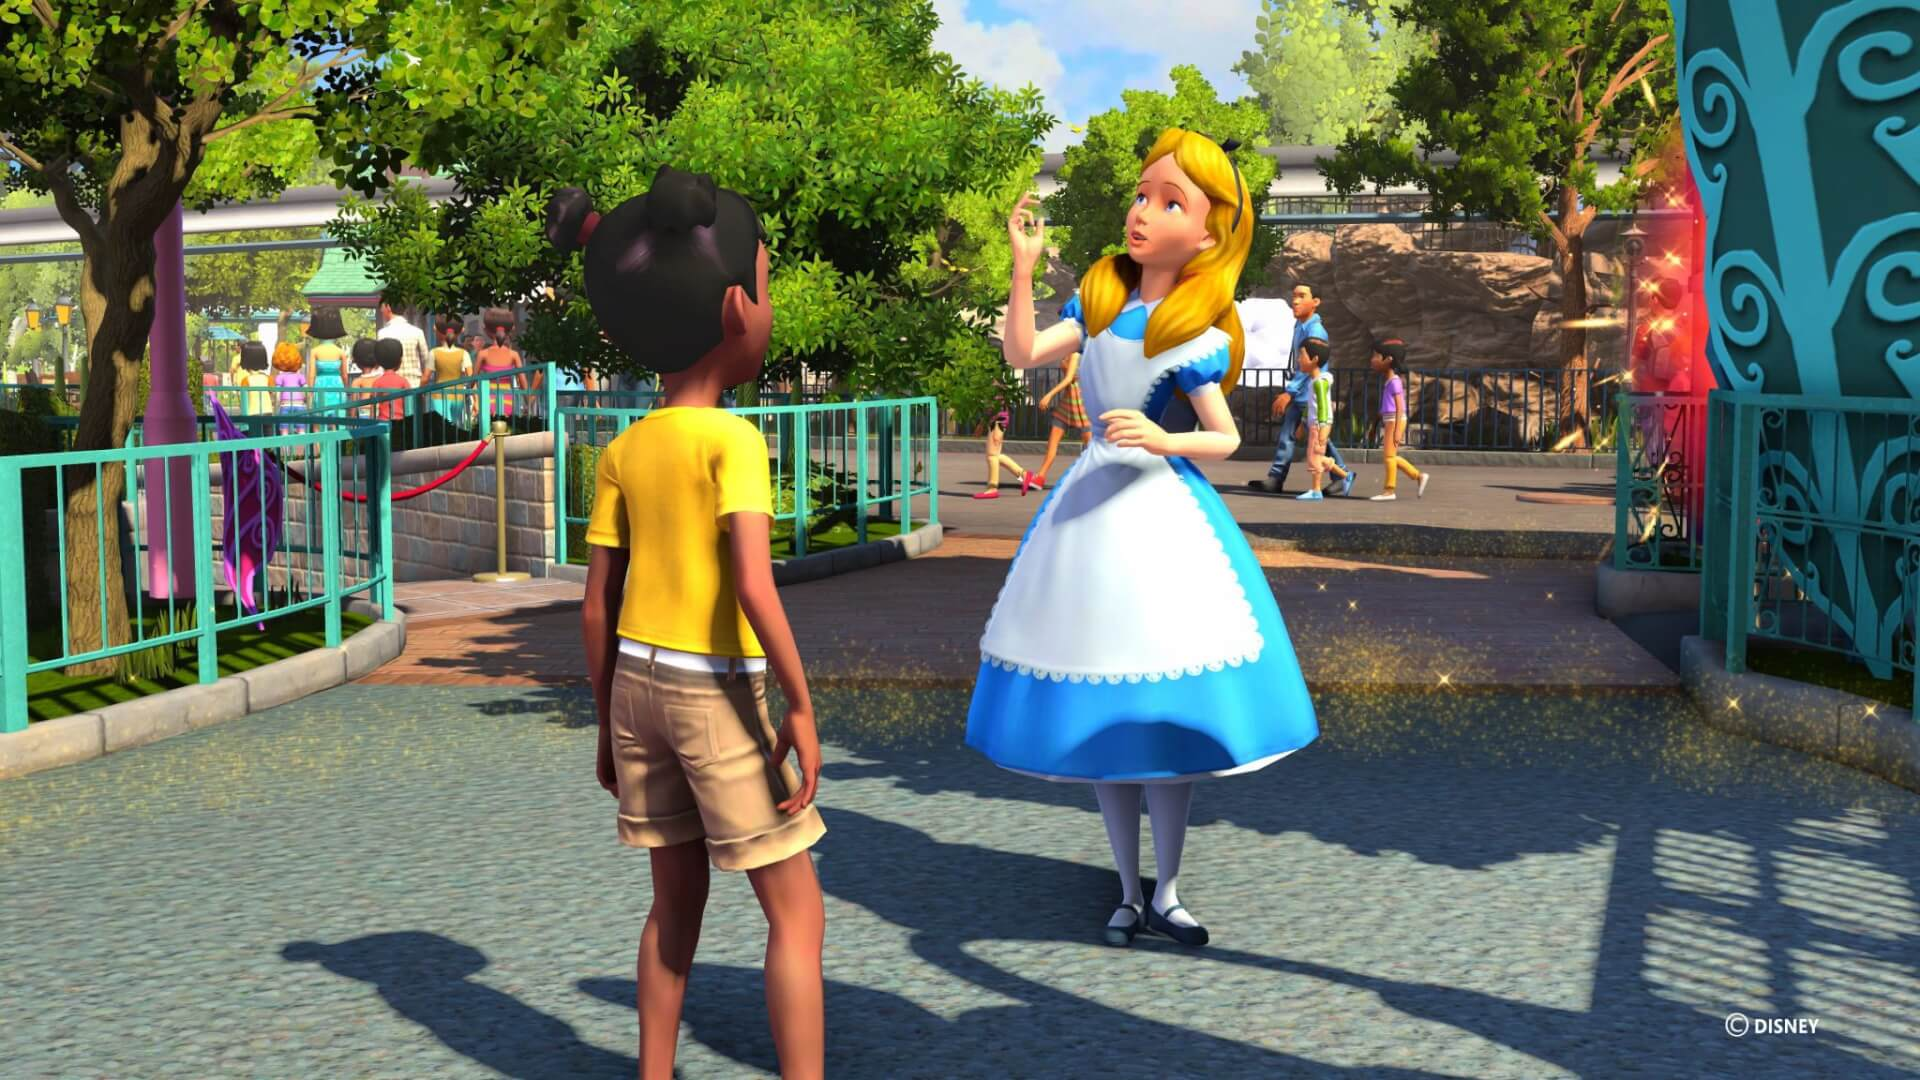 VIDEO Disneyland Adventures And Rush A Disney Pixar Adventure Video Games Arrive